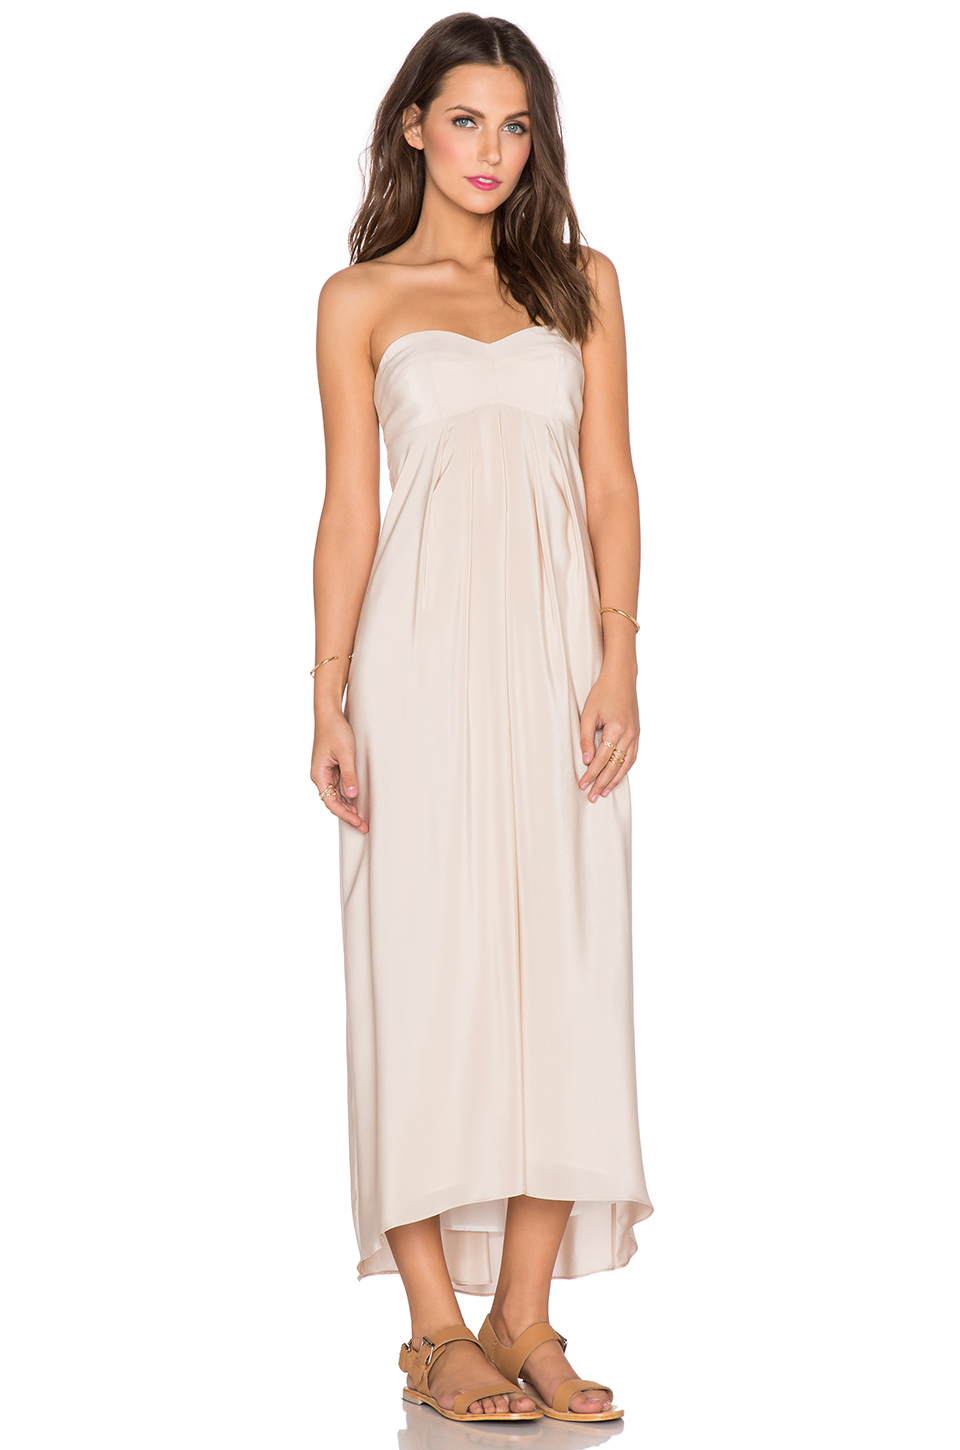 2441b13d661b Amanda Uprichard Tie Back Maxi Dress in White - Lyst